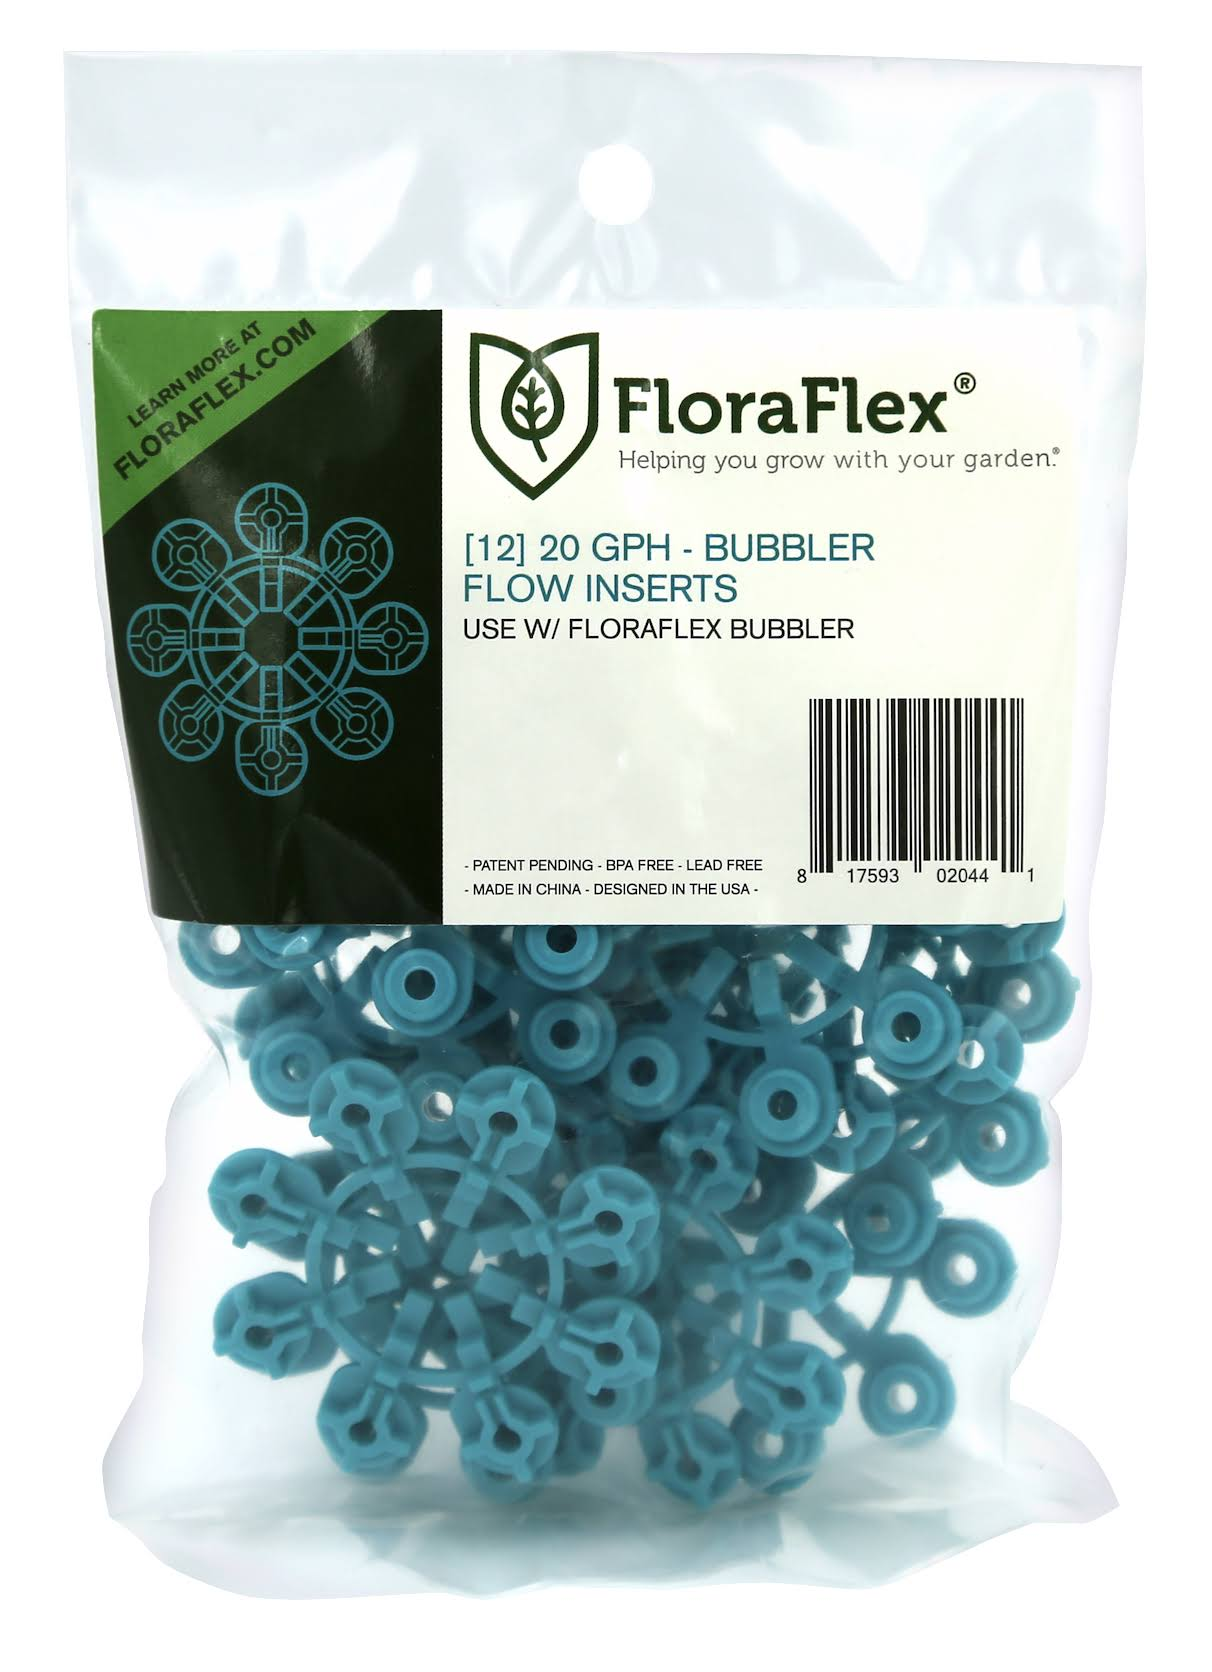 FloraFlex Bubbler Flow Insert - 12pcs